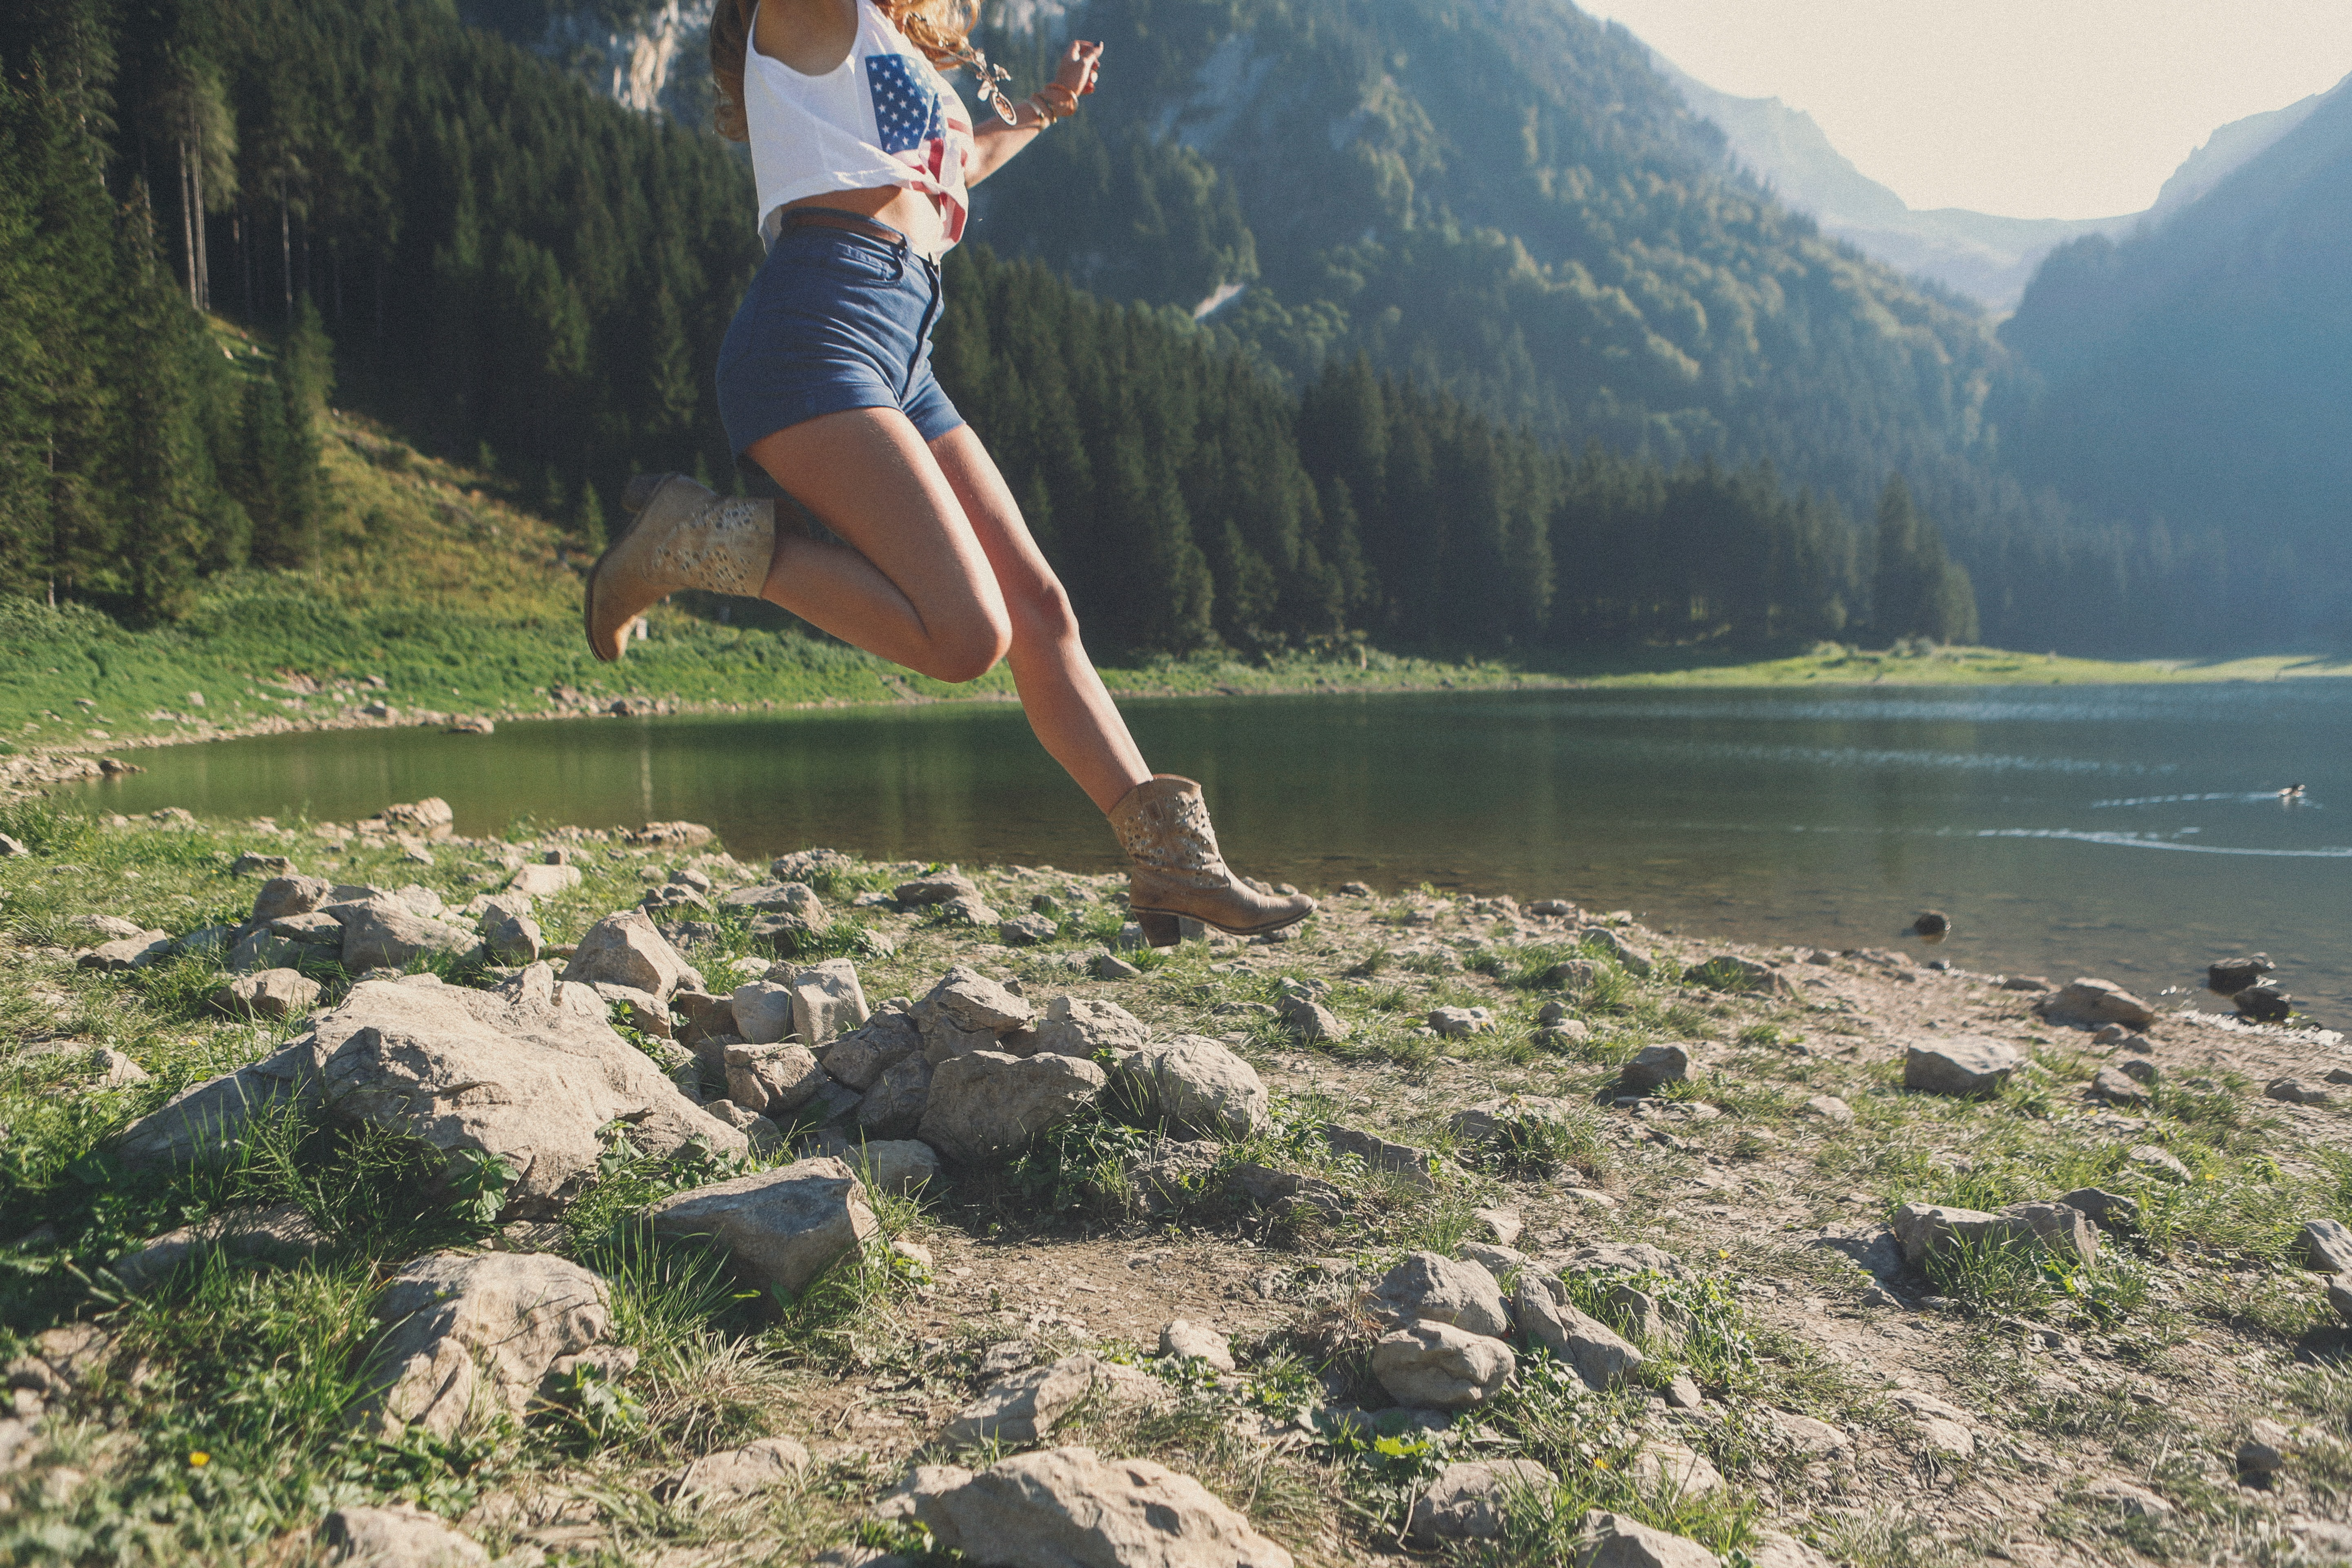 A woman in cowboy boots jumping over rocks on a shore of a mountain lake